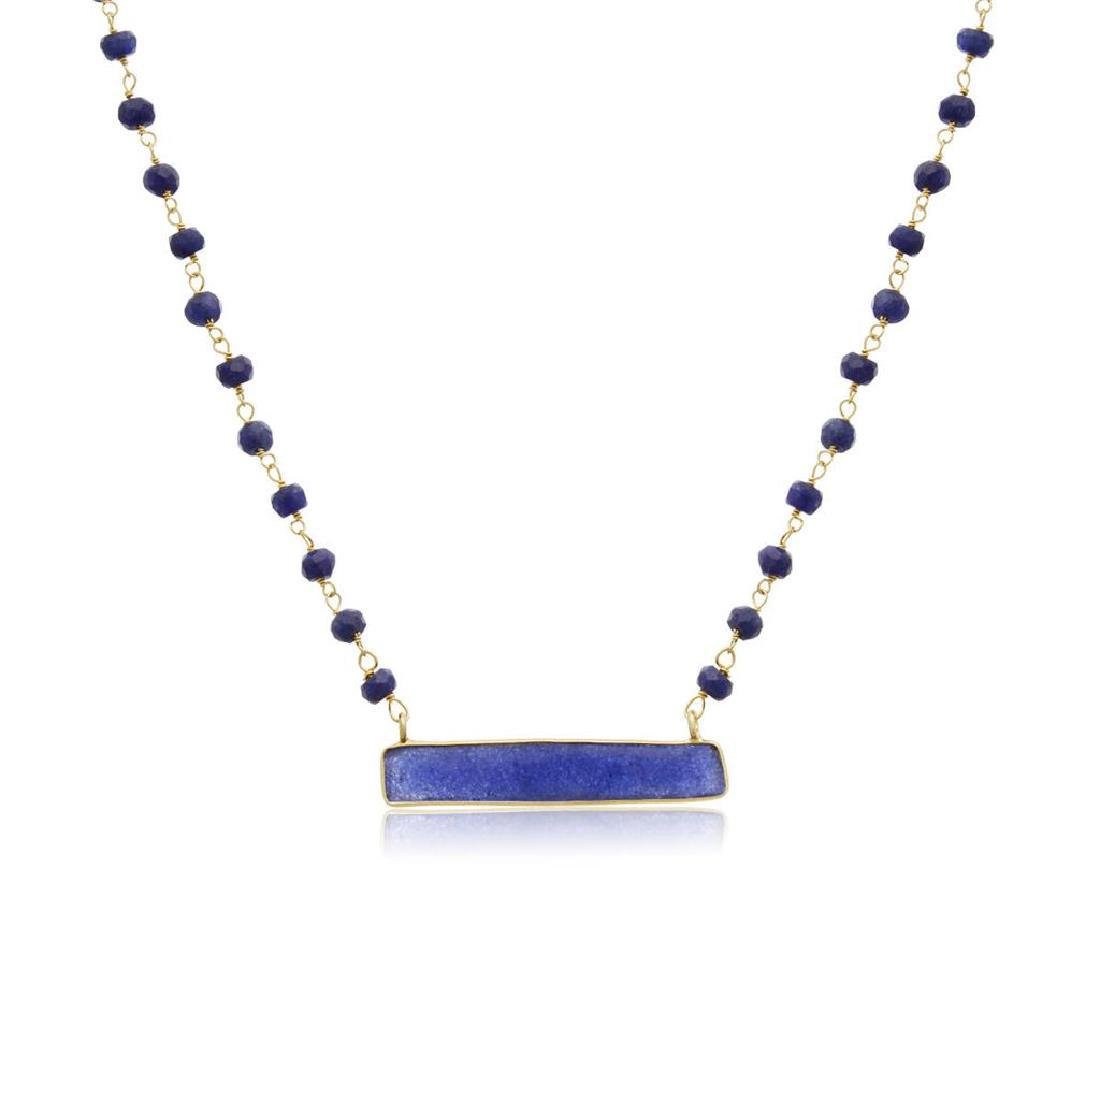 18K Gold Sterling Silver Sapphire Necklace, 58ctw - 2